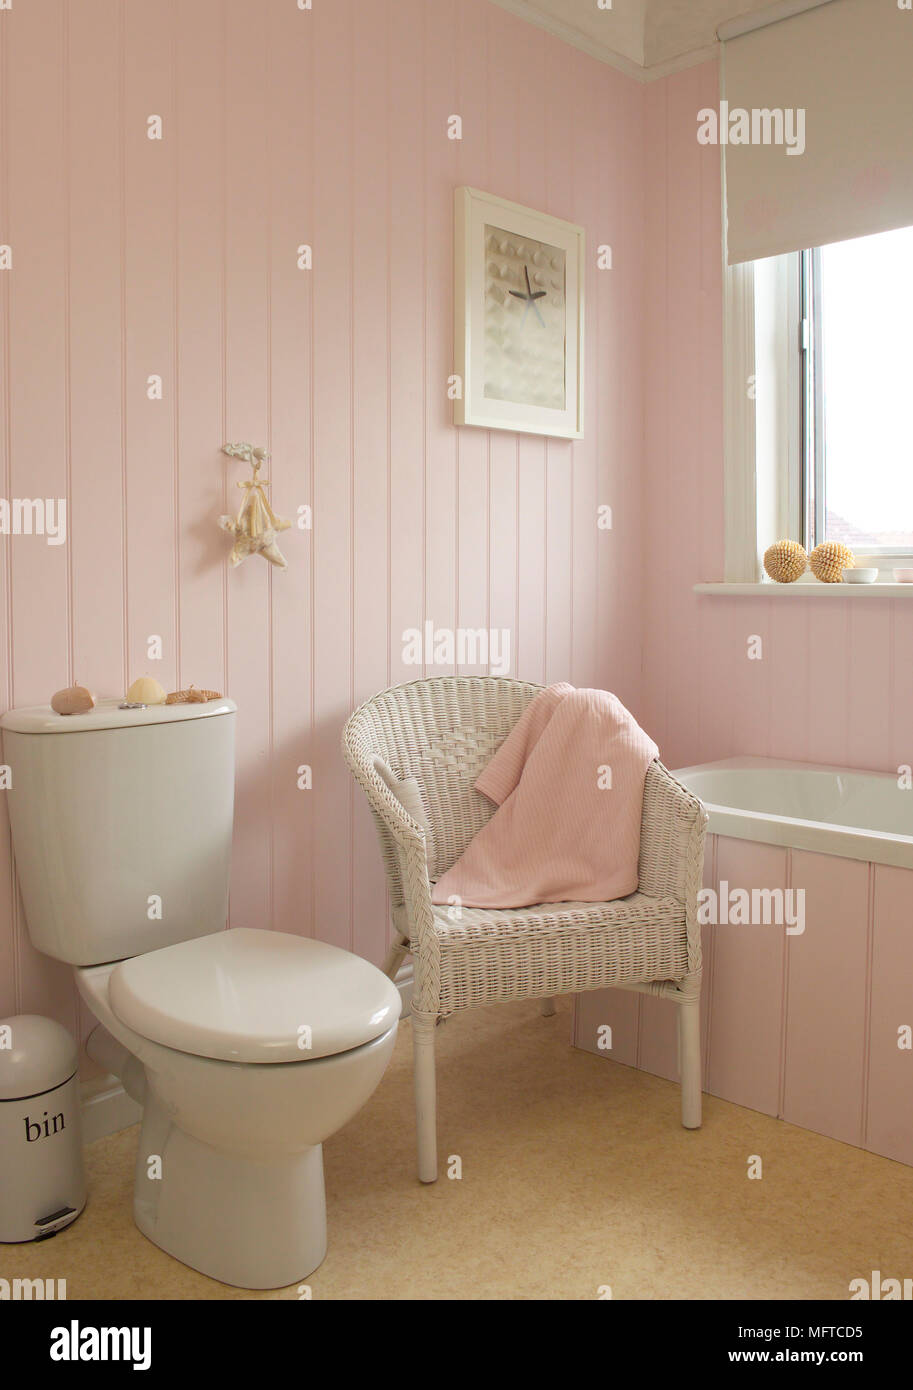 Emejing Rosa Badezimmer Accessoires Contemporary ...